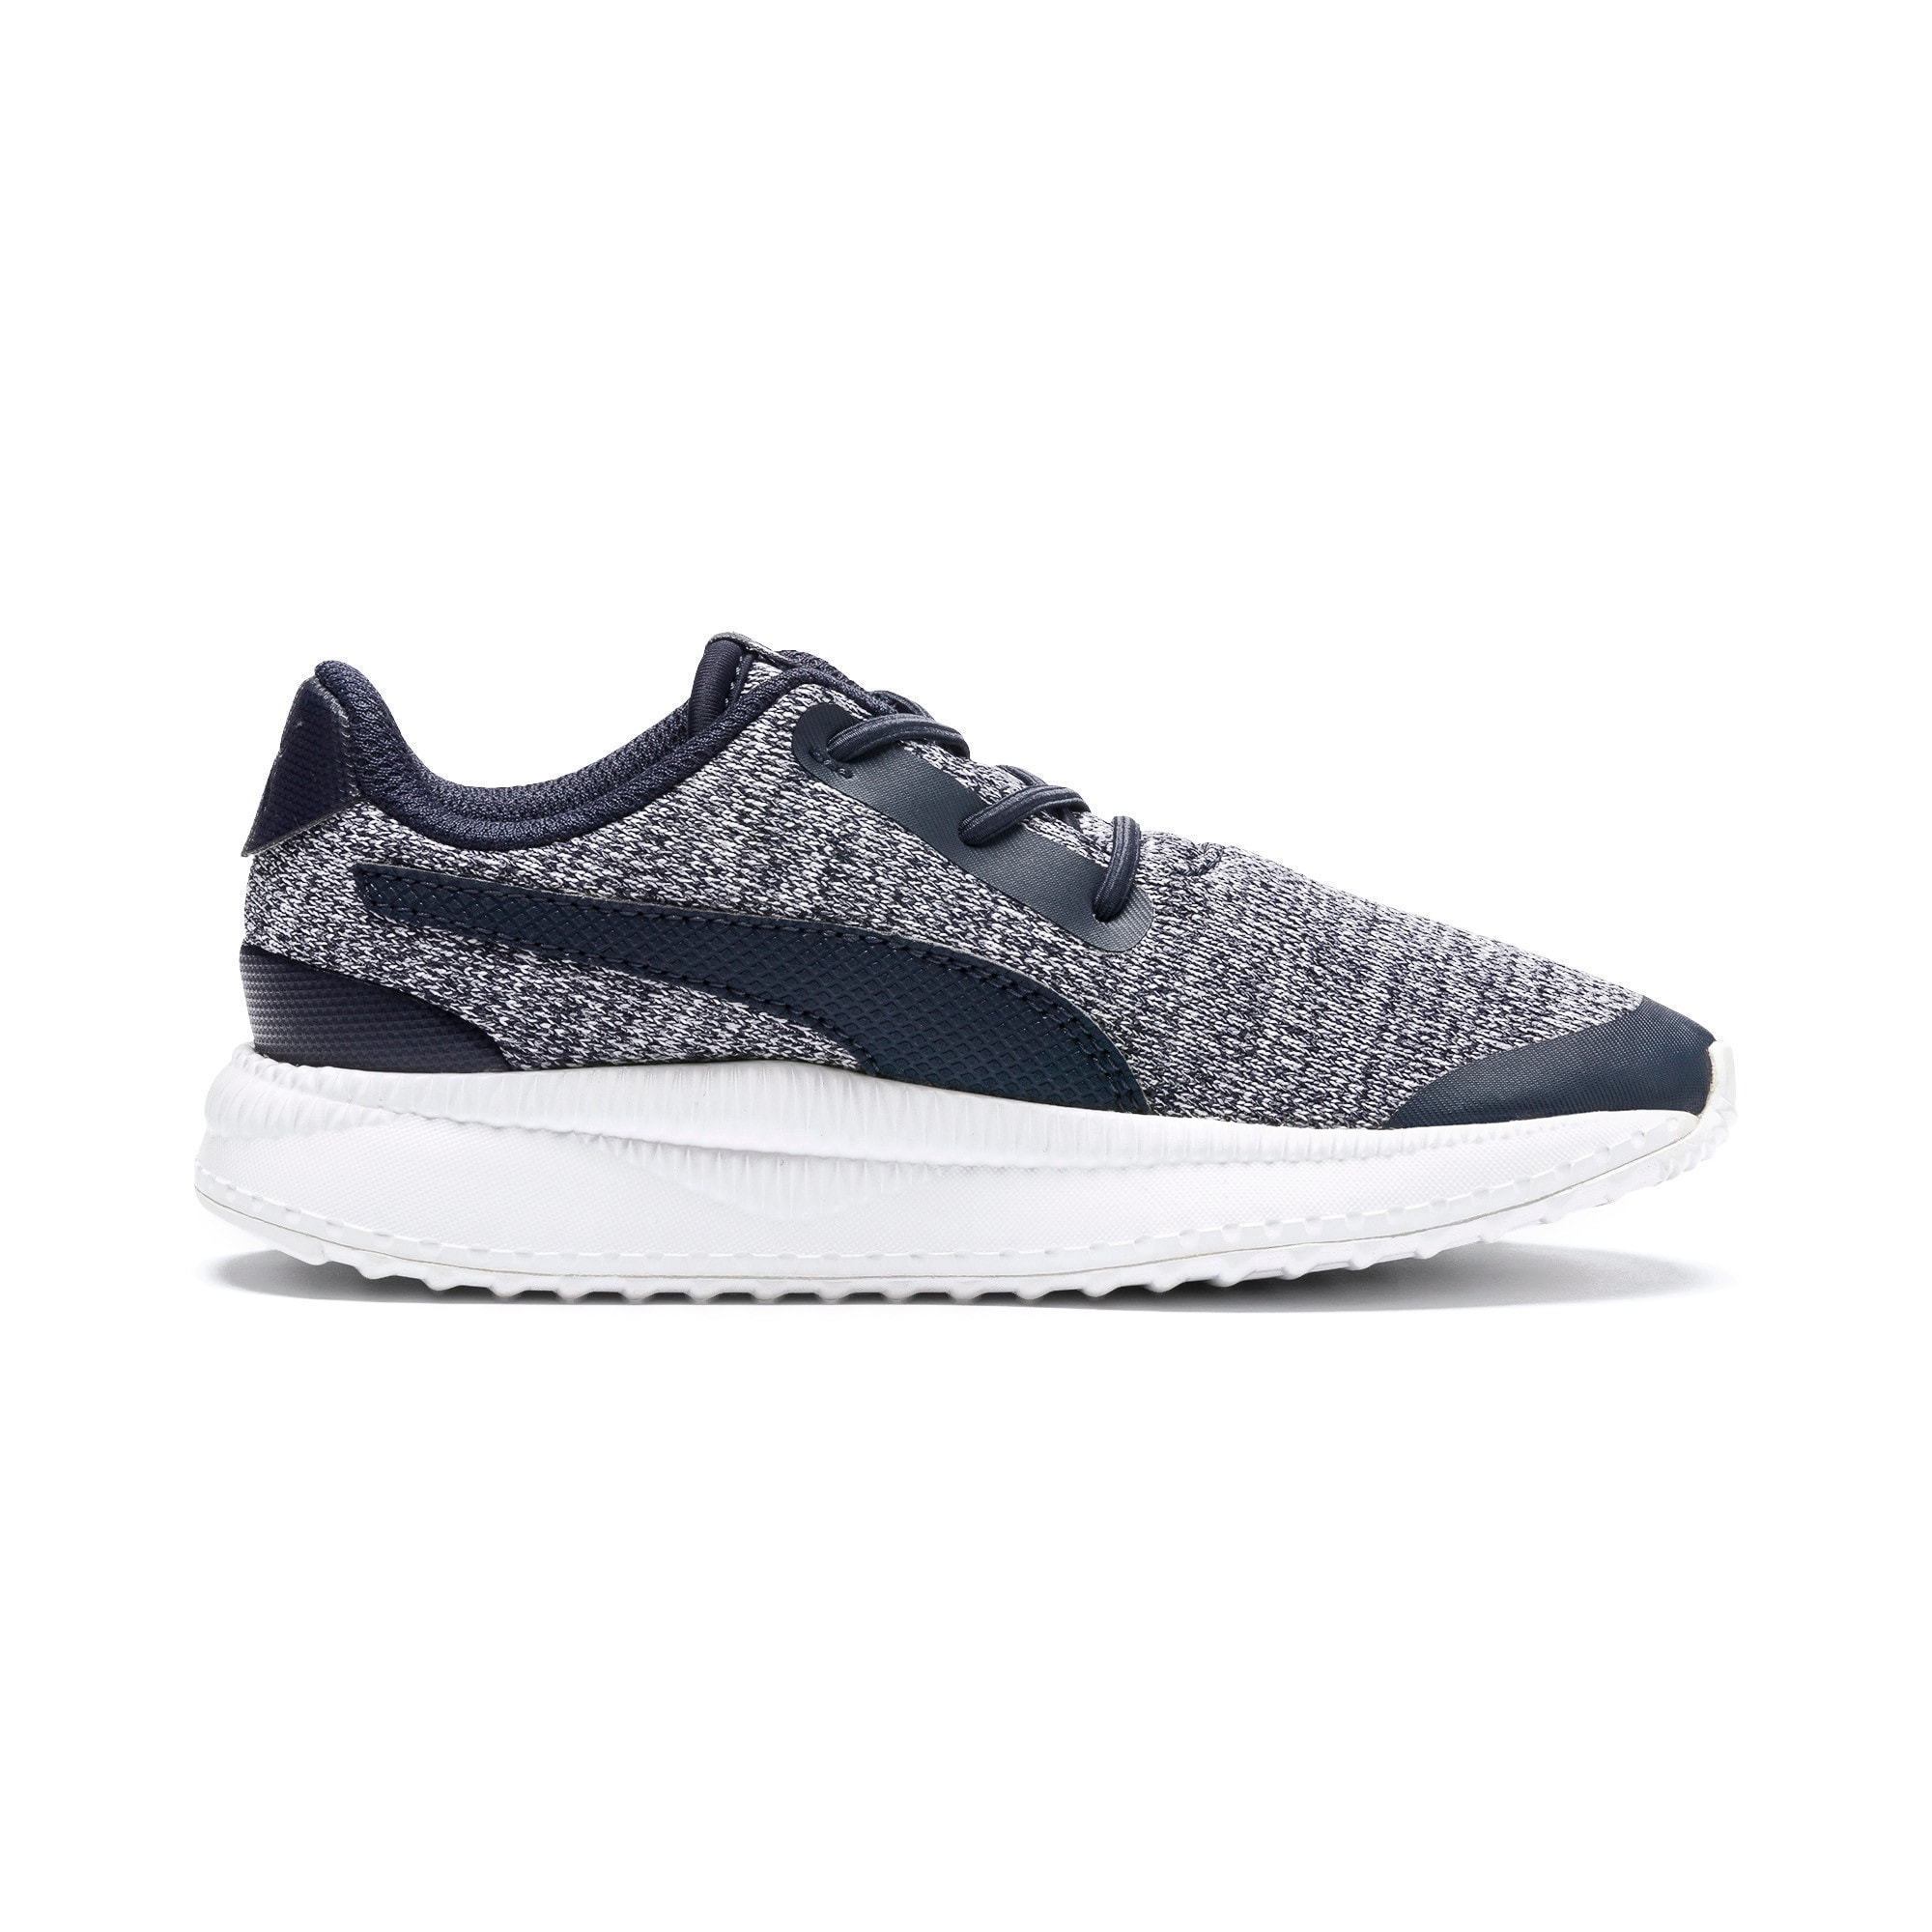 Thumbnail 5 of Pacer Next FS Knit AC Kids' Trainers, Peacoat-Puma White, medium-IND